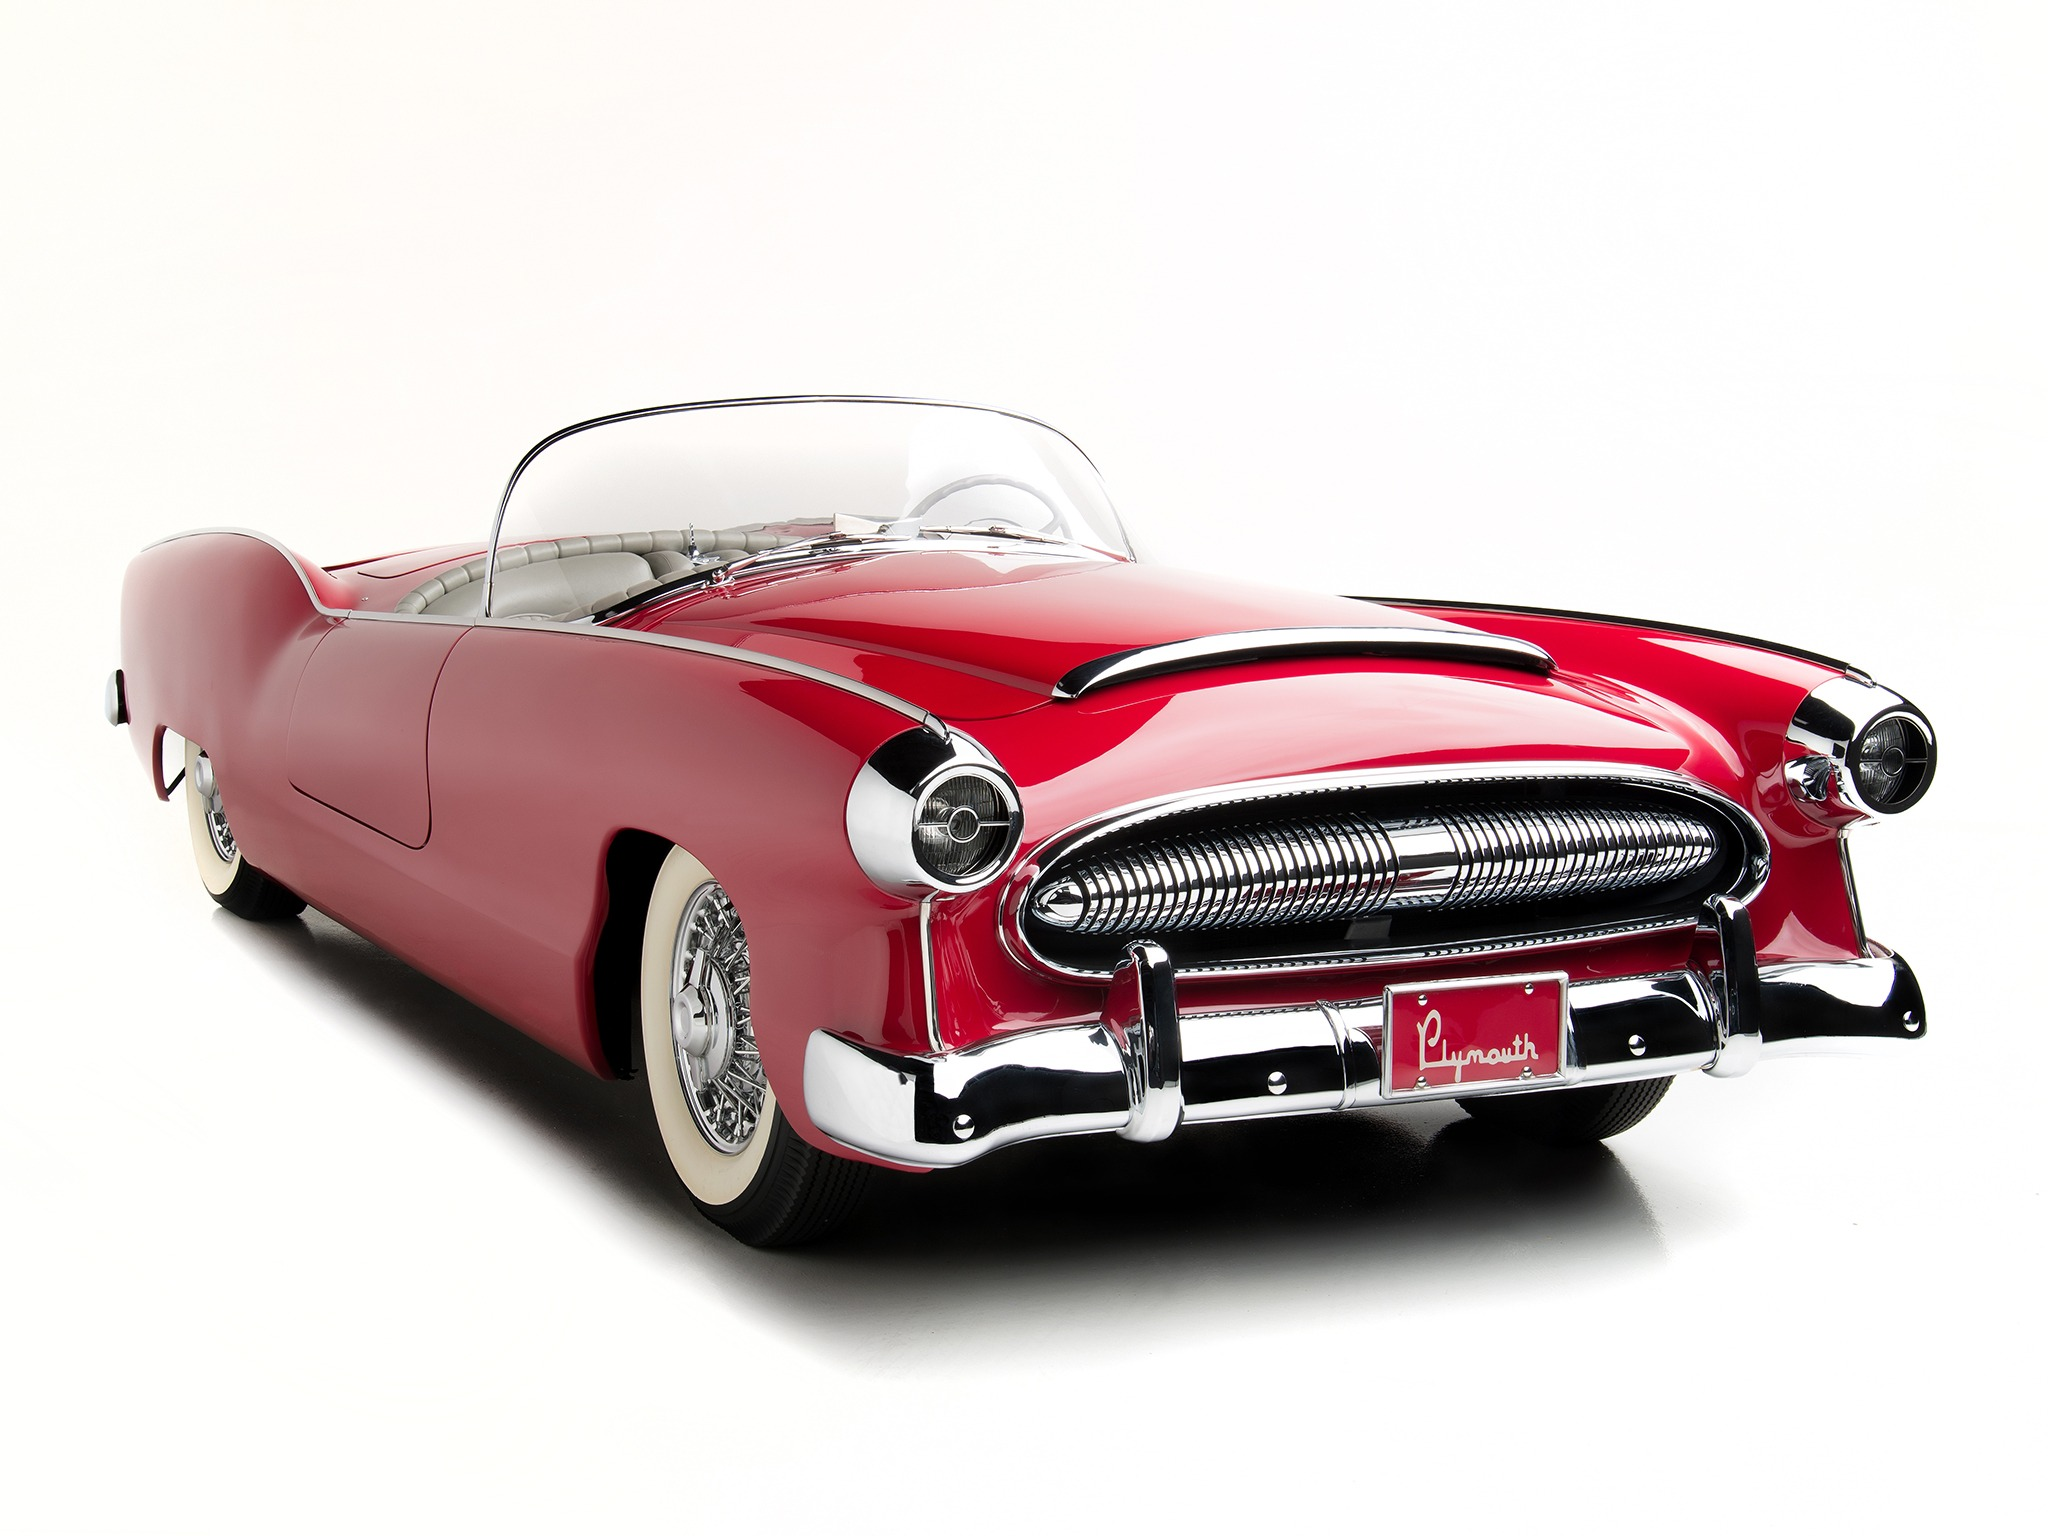 Plymouth Belmont Concept (1954) – Old Concept Cars